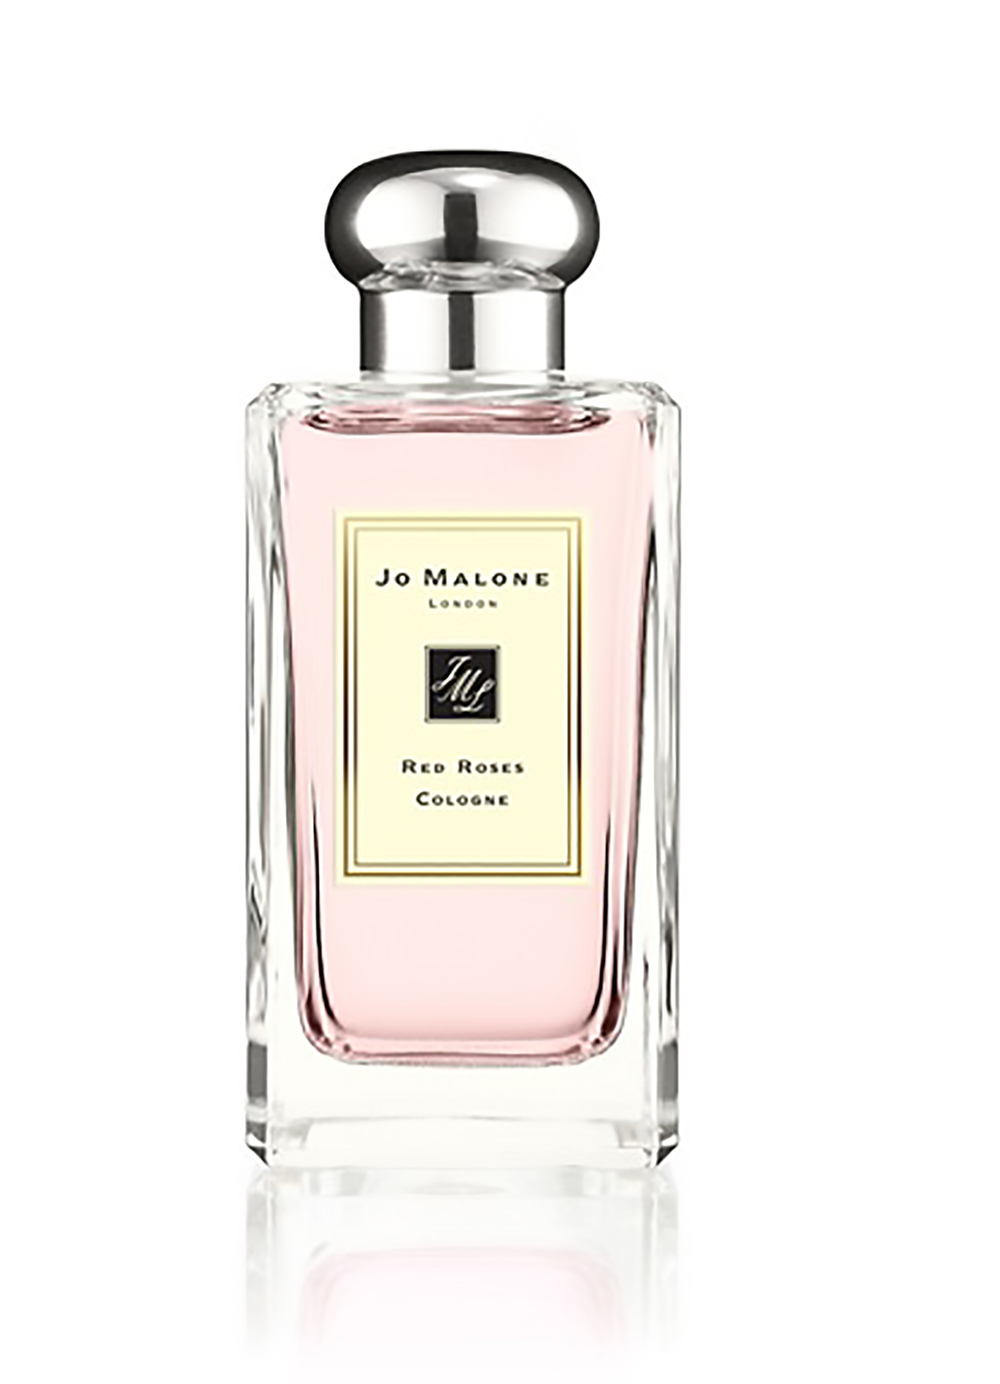 jo malone red roses cologne love yourself 1500.jpg